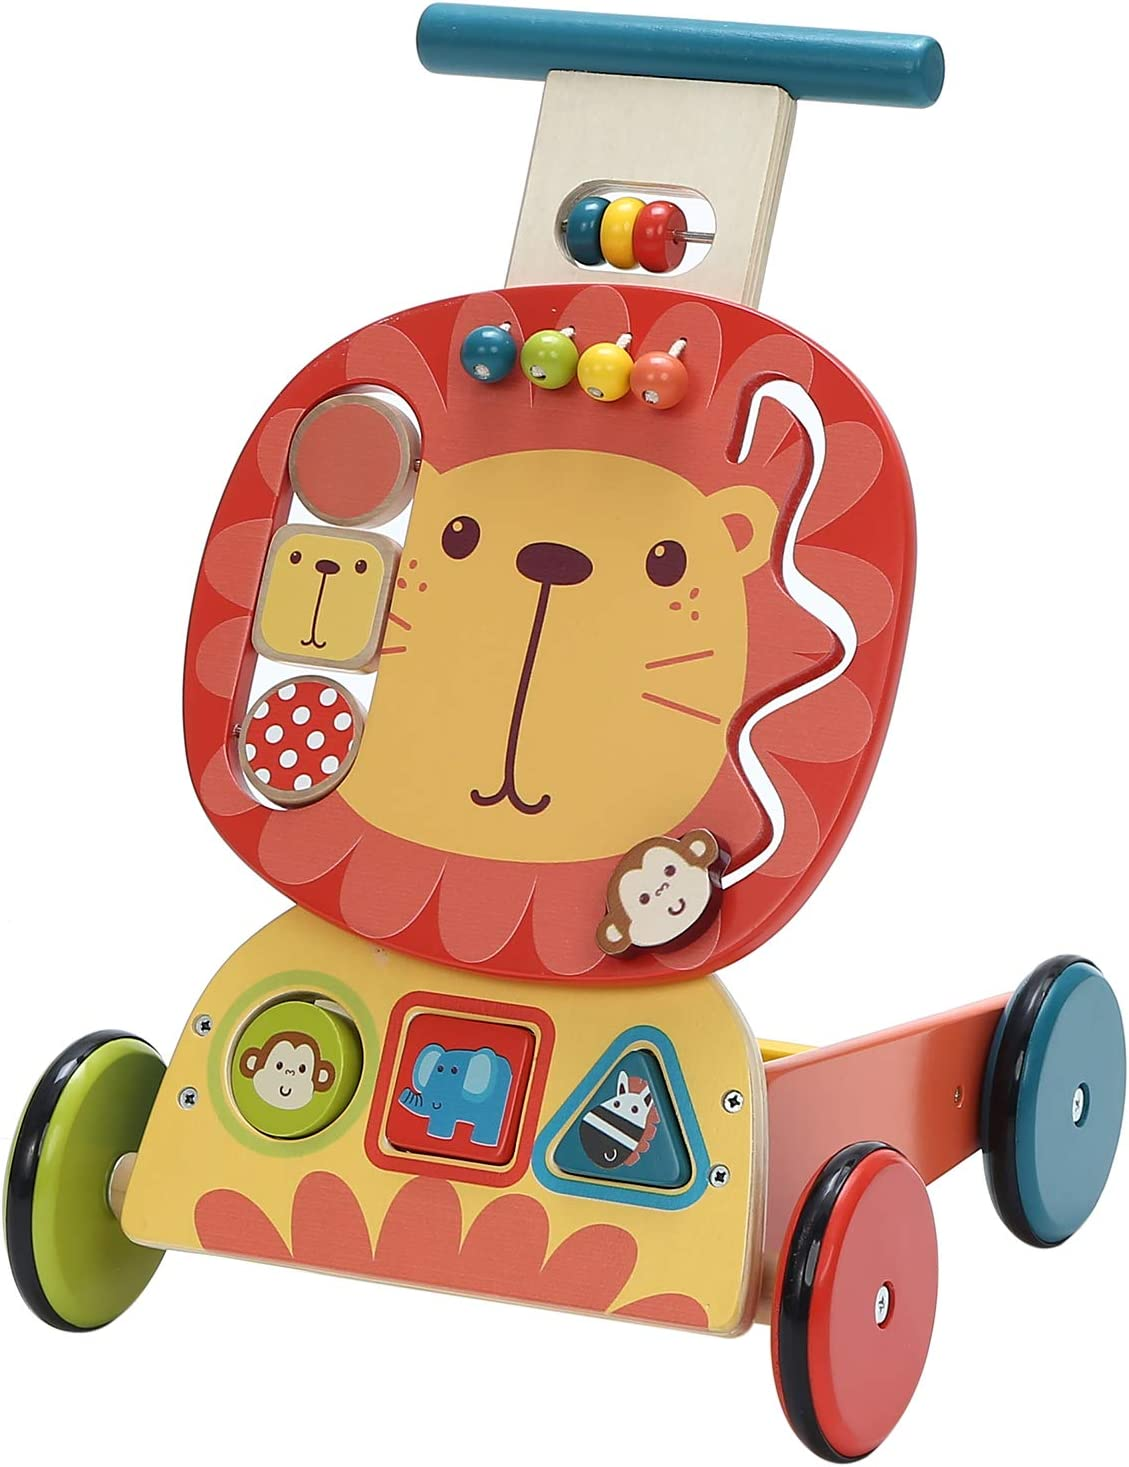 labebe - 4 Wheels Walker for Baby, Wooden Push Wagon Toy for 1-3 Years Old Girl/Boy, Toddler/Kid Push Toy Cart for Walking, 2-in-1 Toy Shopping Cart, Outdoor Activity Walker for Infant - Yellow Lion